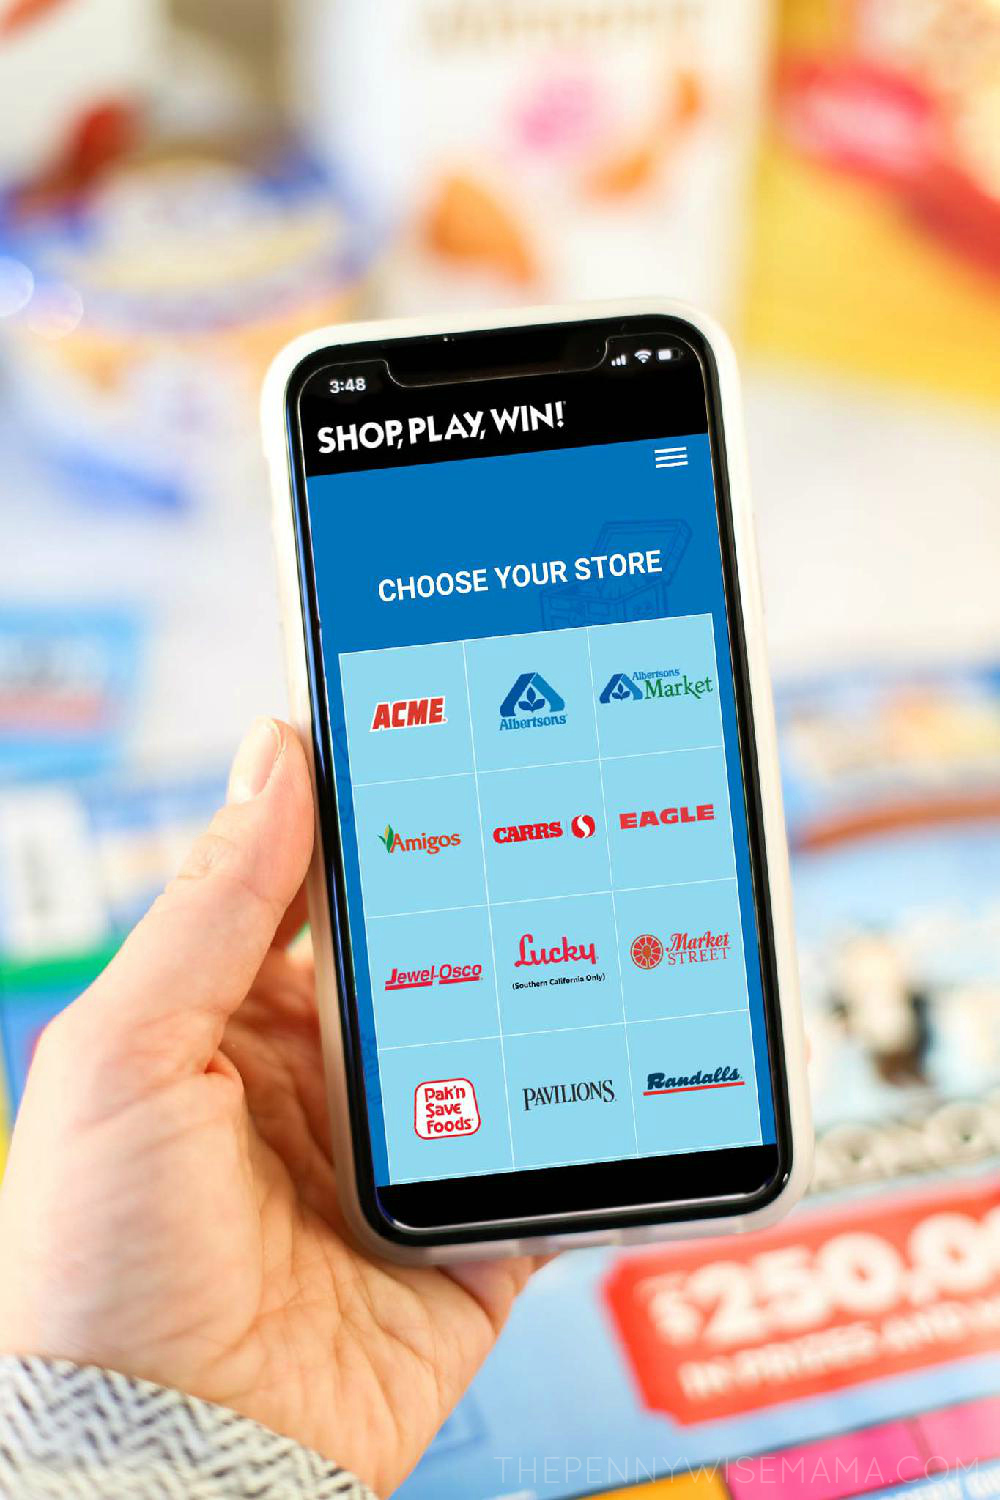 How to Play Shop Play Win Monopoly at Safeway